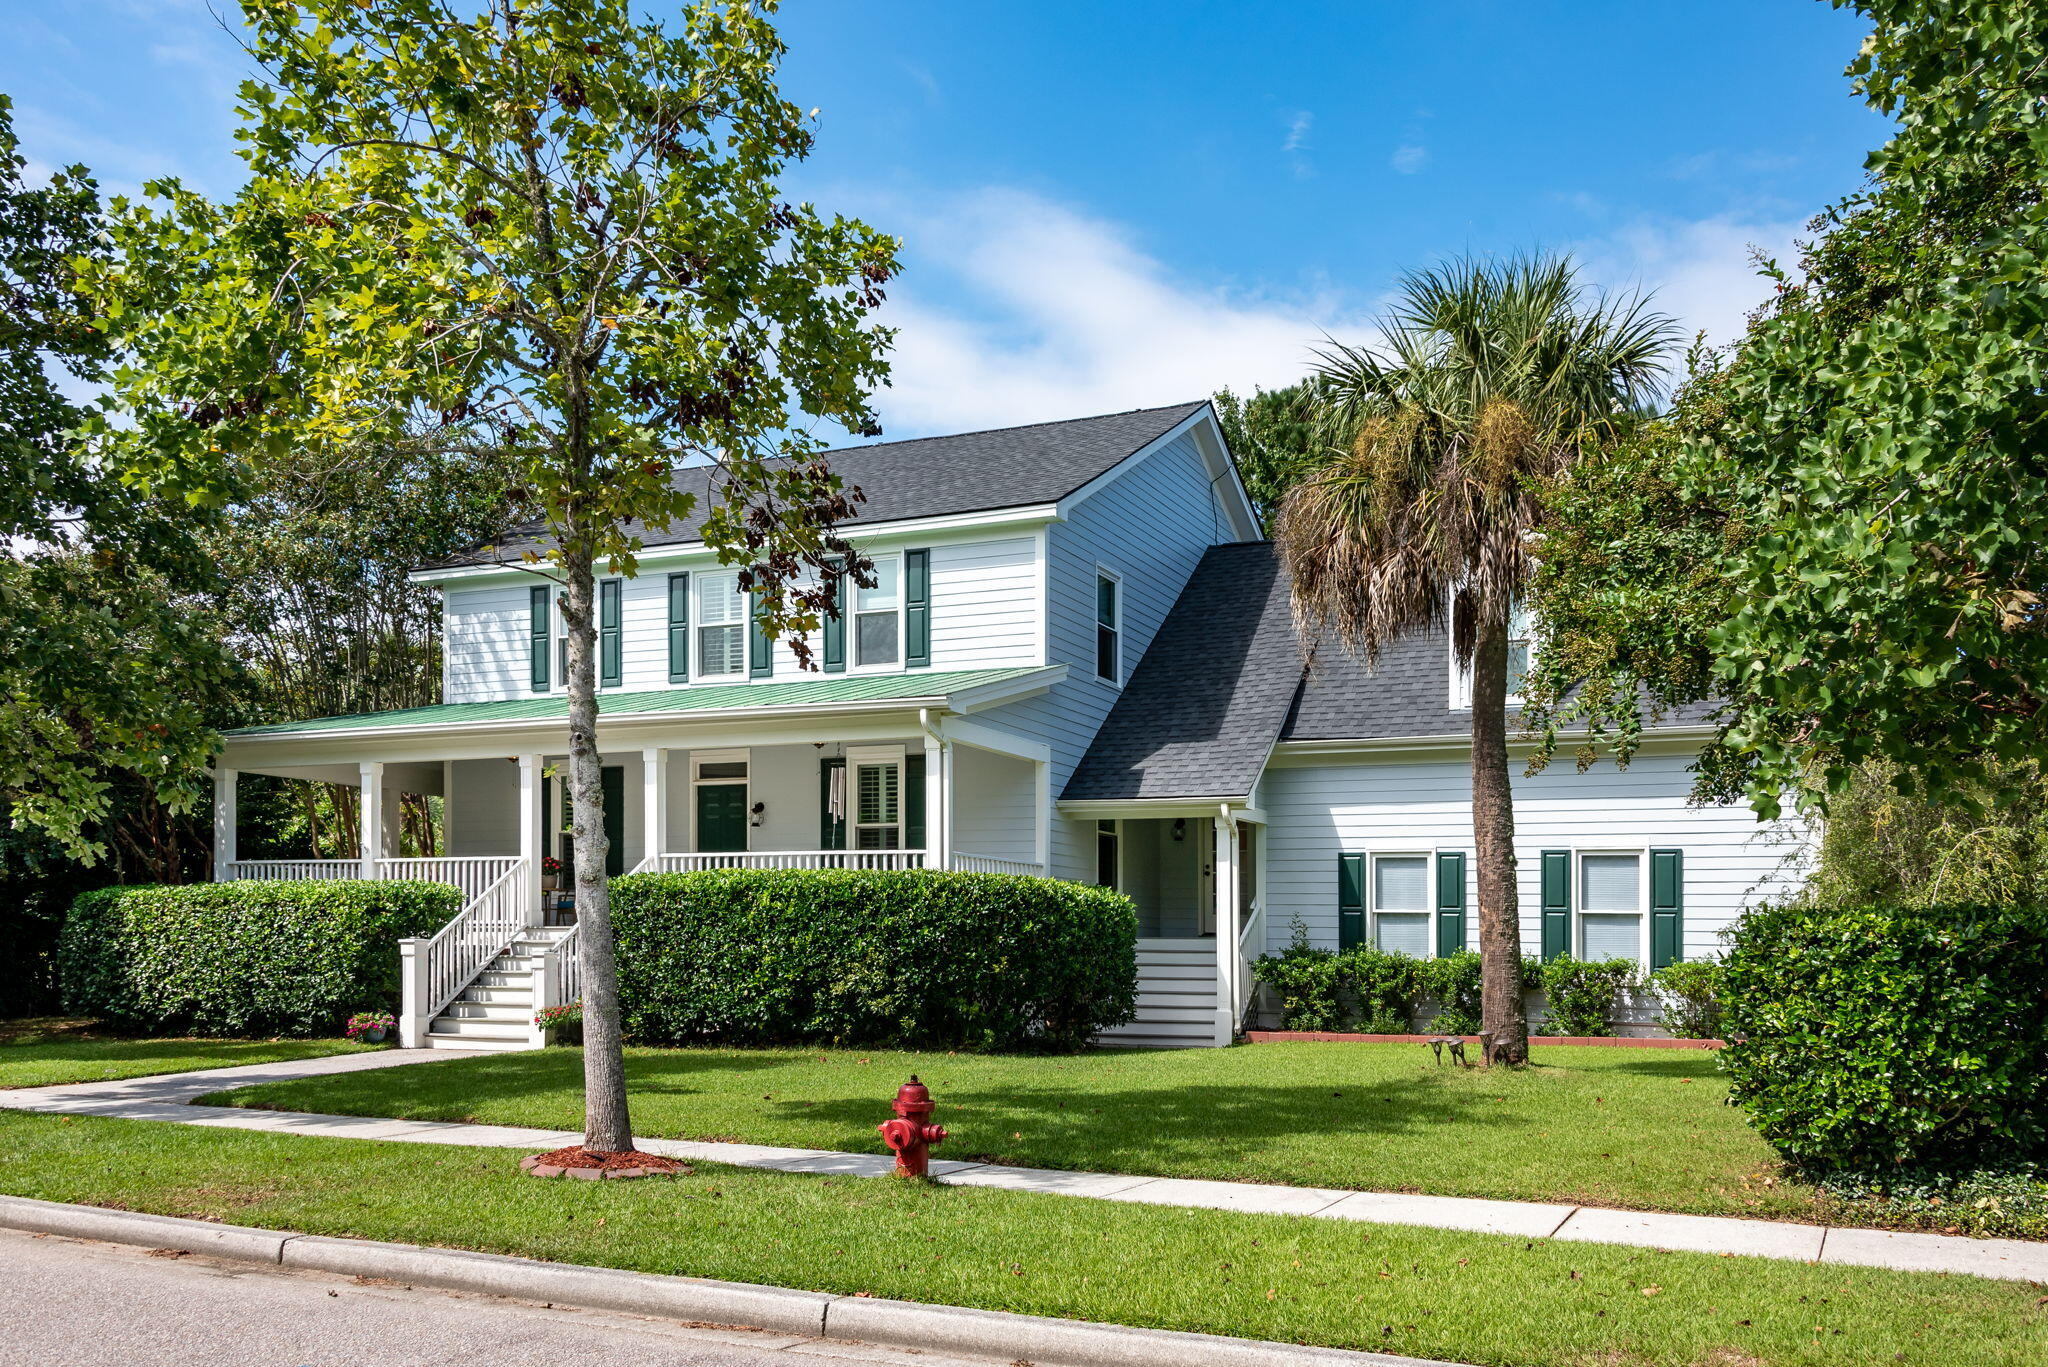 Rivertowne On The Wando Homes For Sale - 2301 Hartfords Bluff, Mount Pleasant, SC - 8